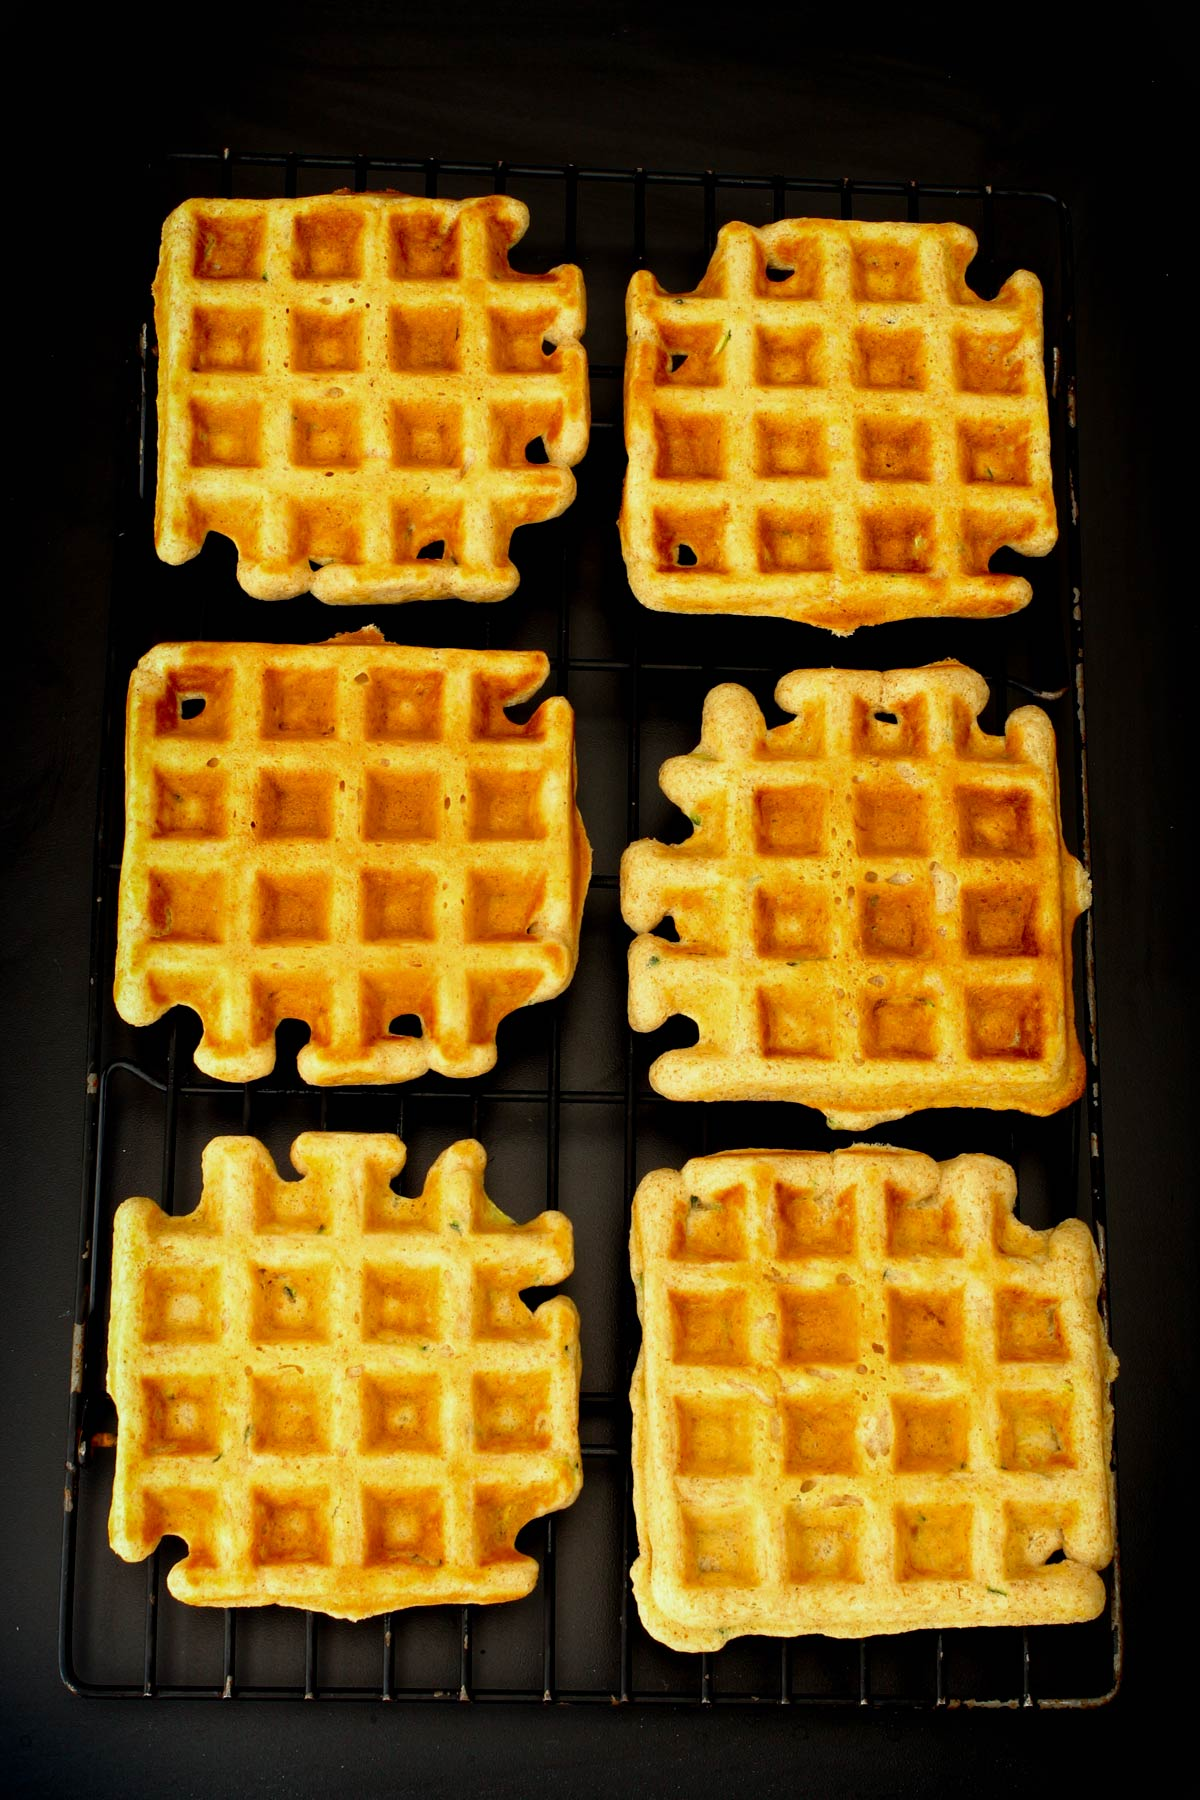 cinnamon waffles cooling on wire rack.